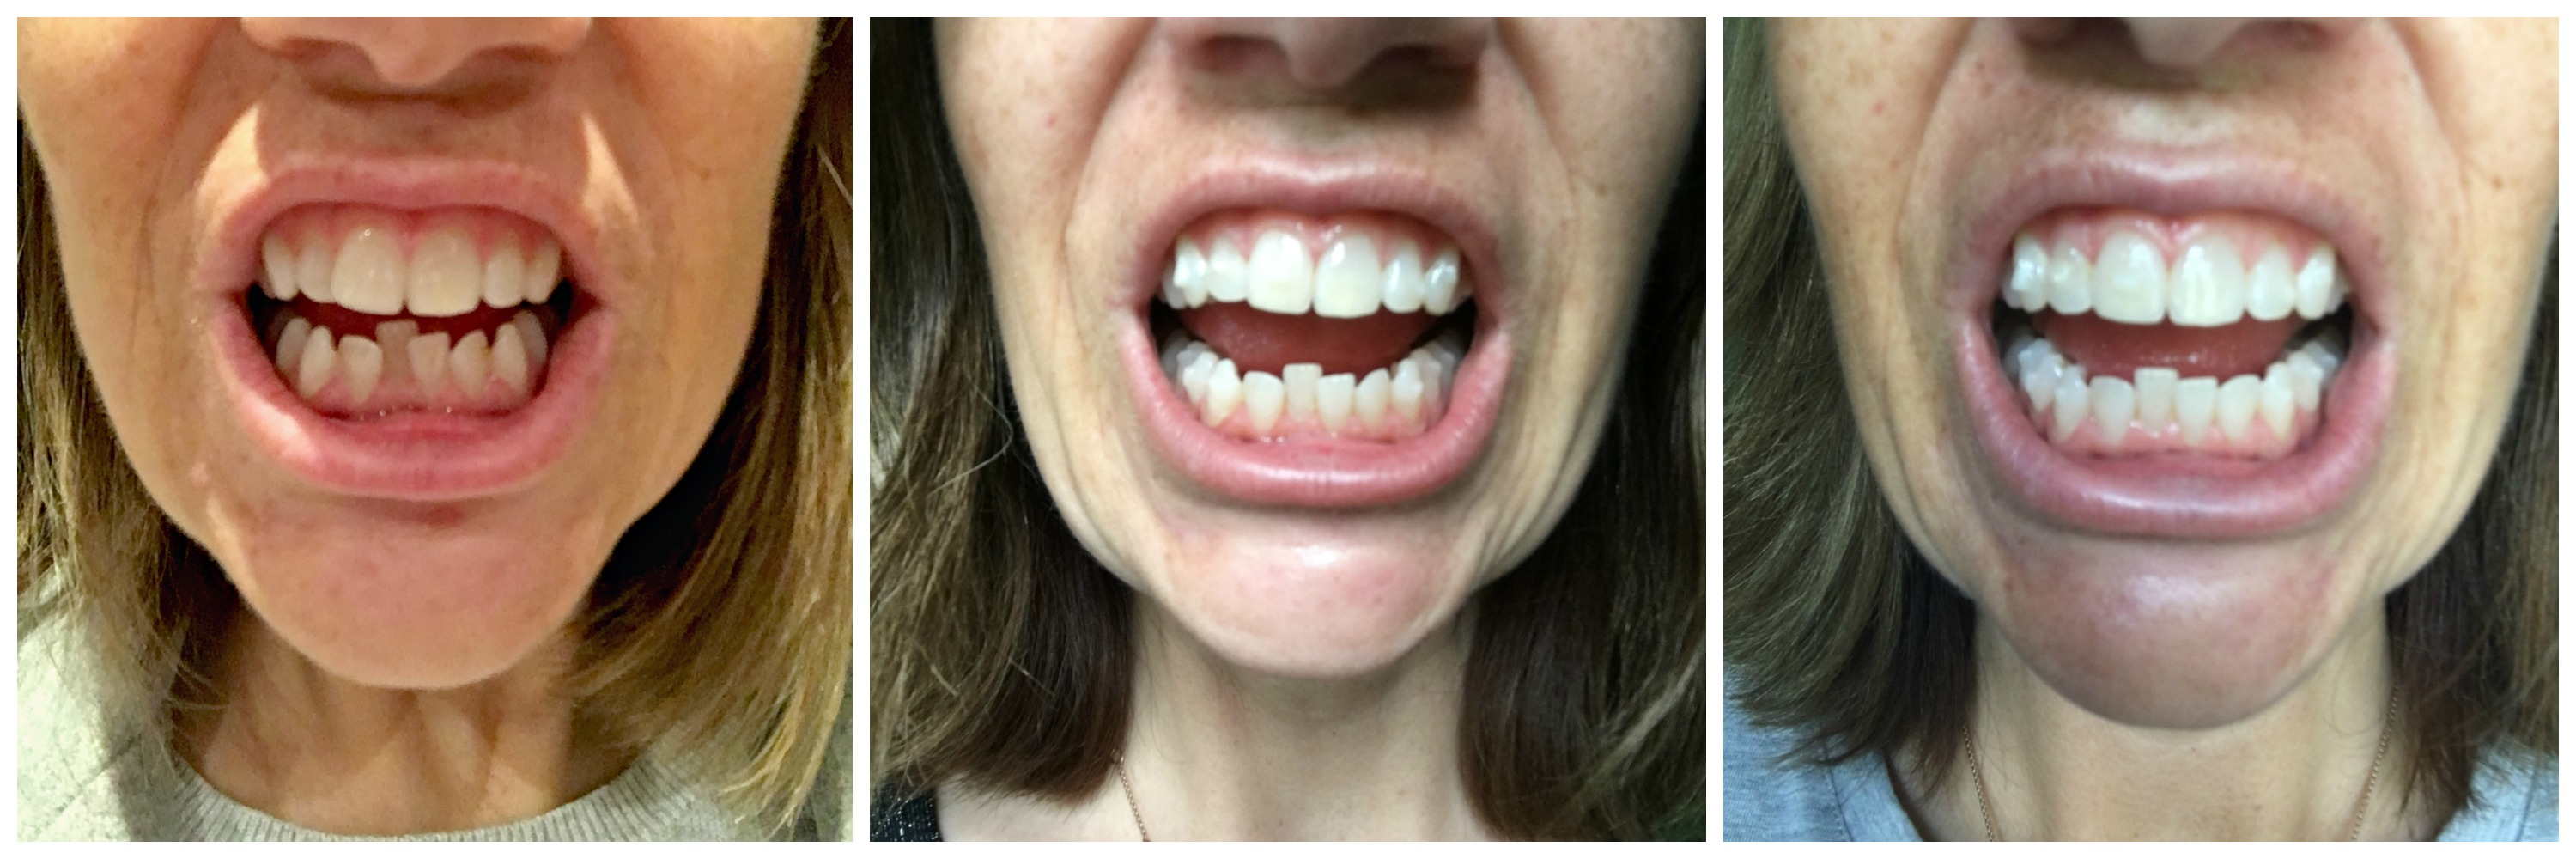 Invisalign Braces - The Low Down - Inside, Outside & Beyond